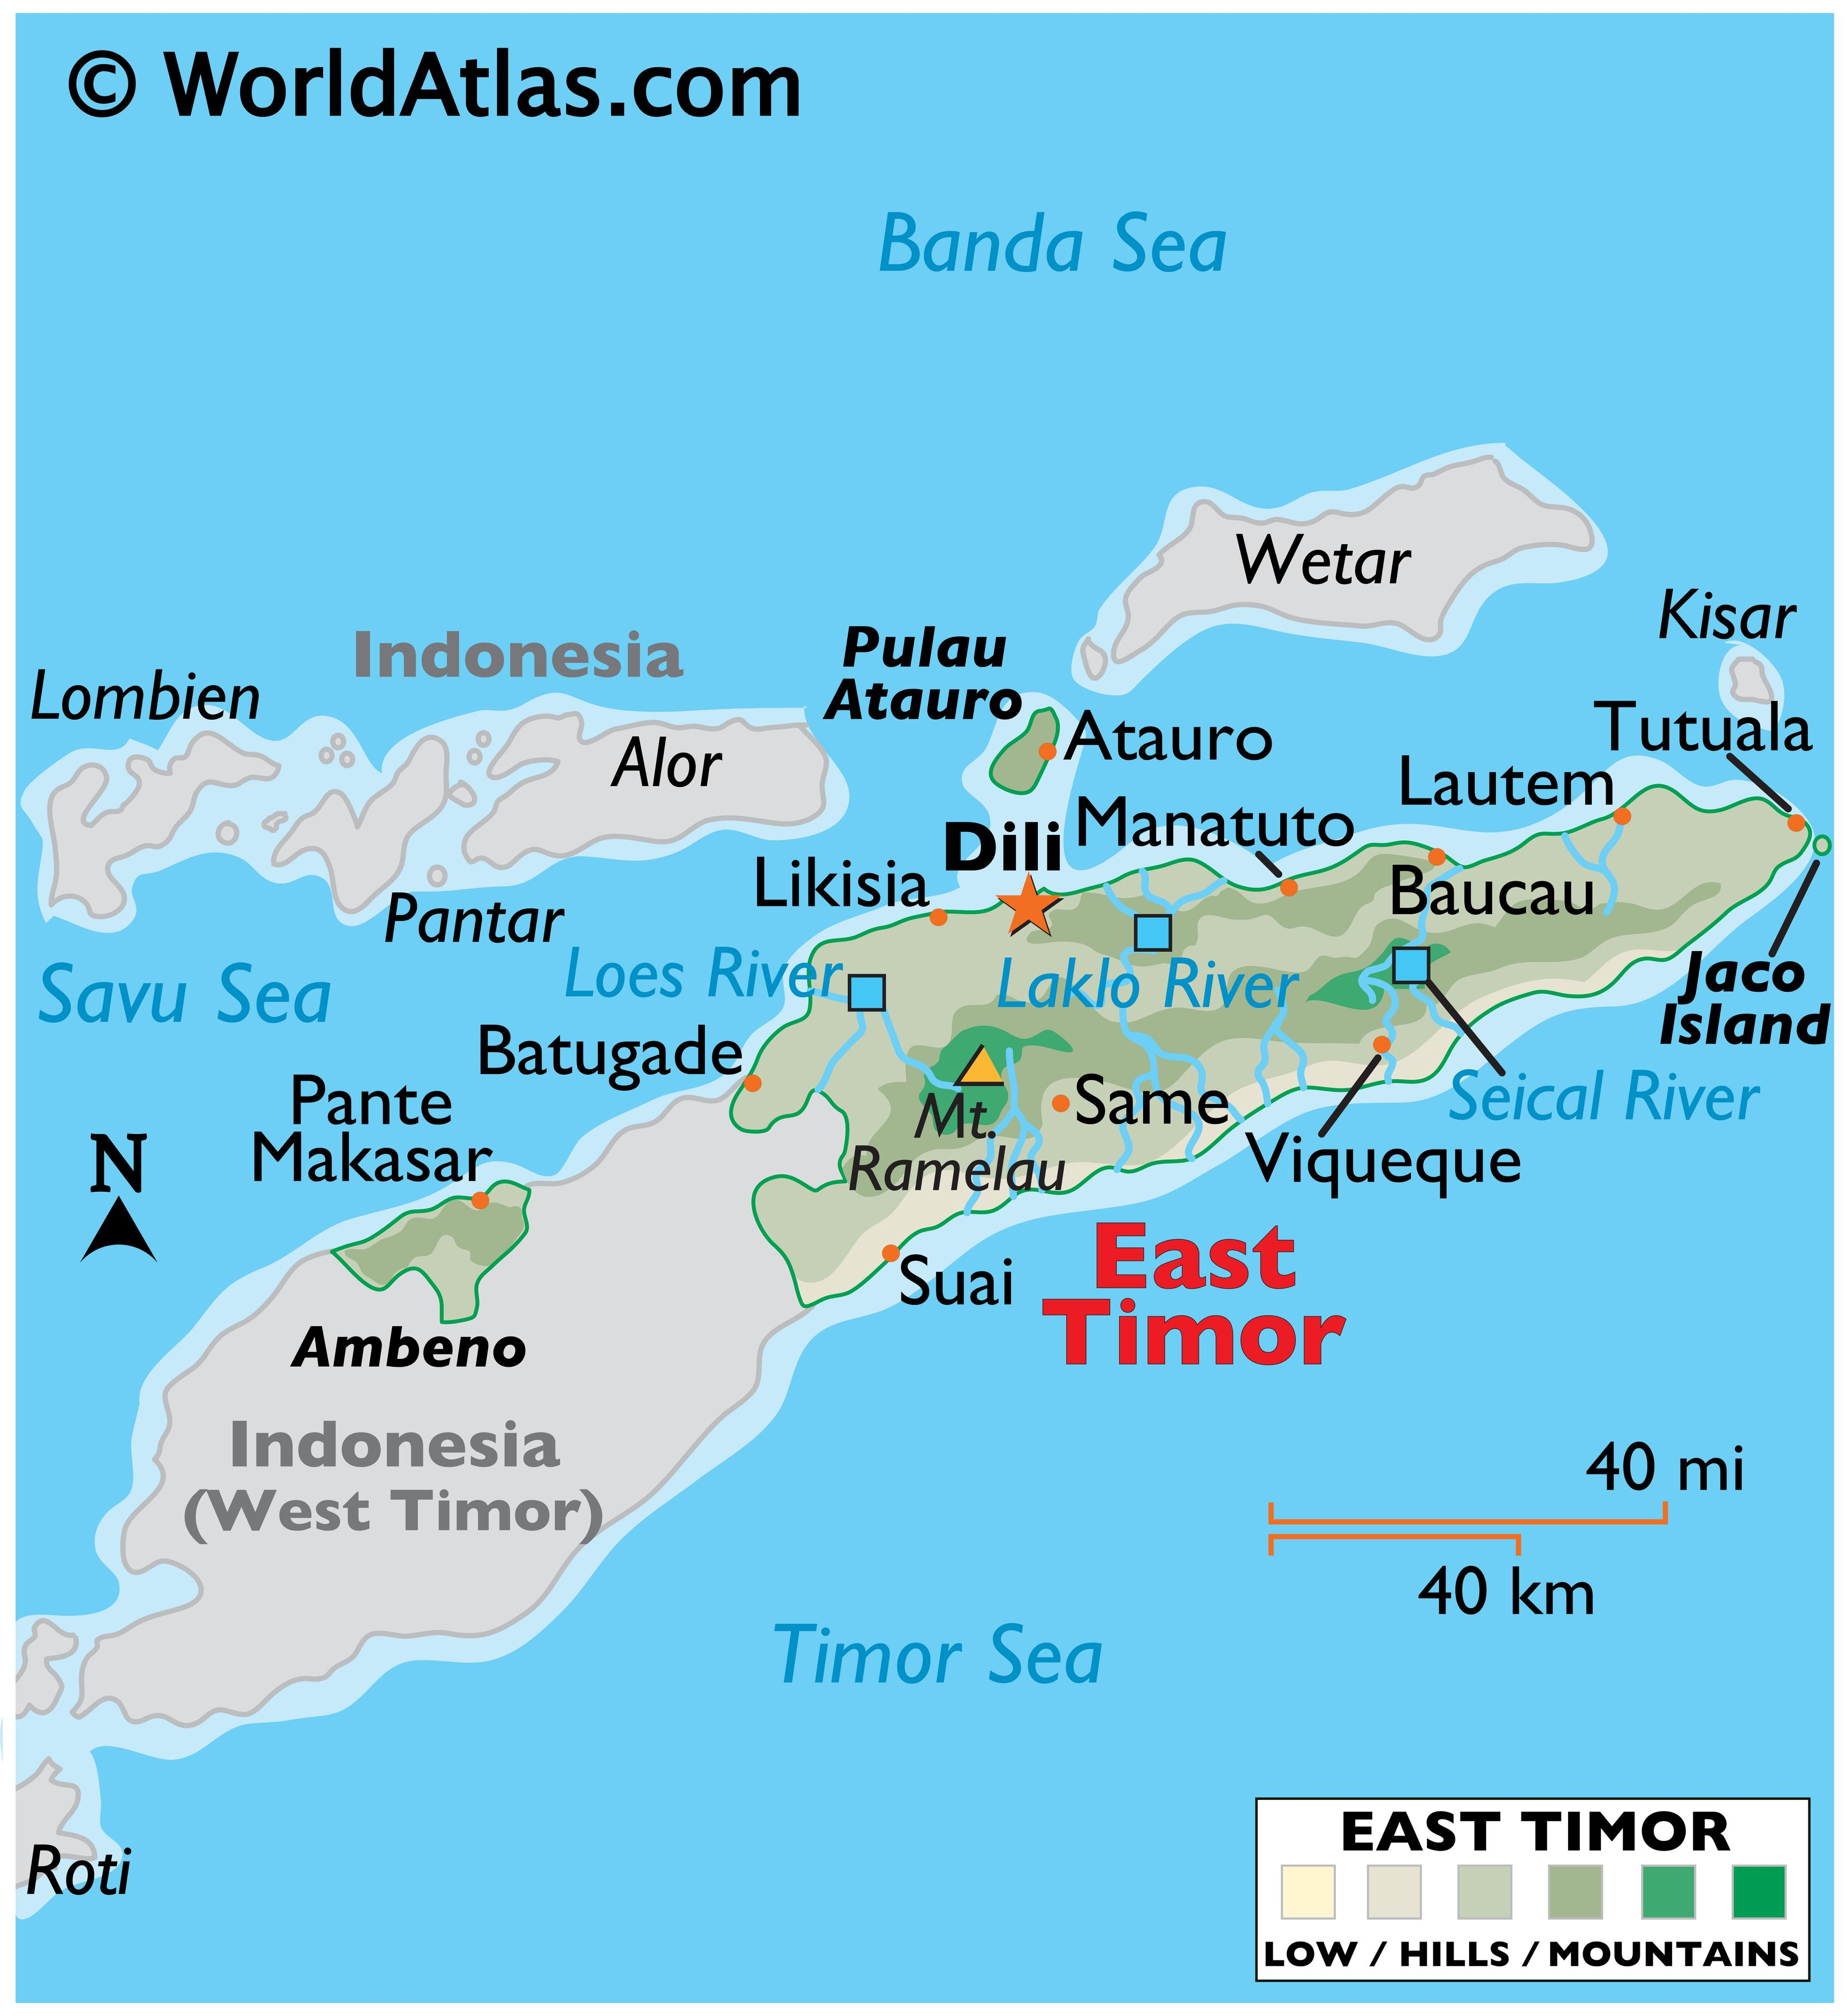 Physical Map of East Timor with state boundaries, relief, major rivers, highest peak, important cities, and more.